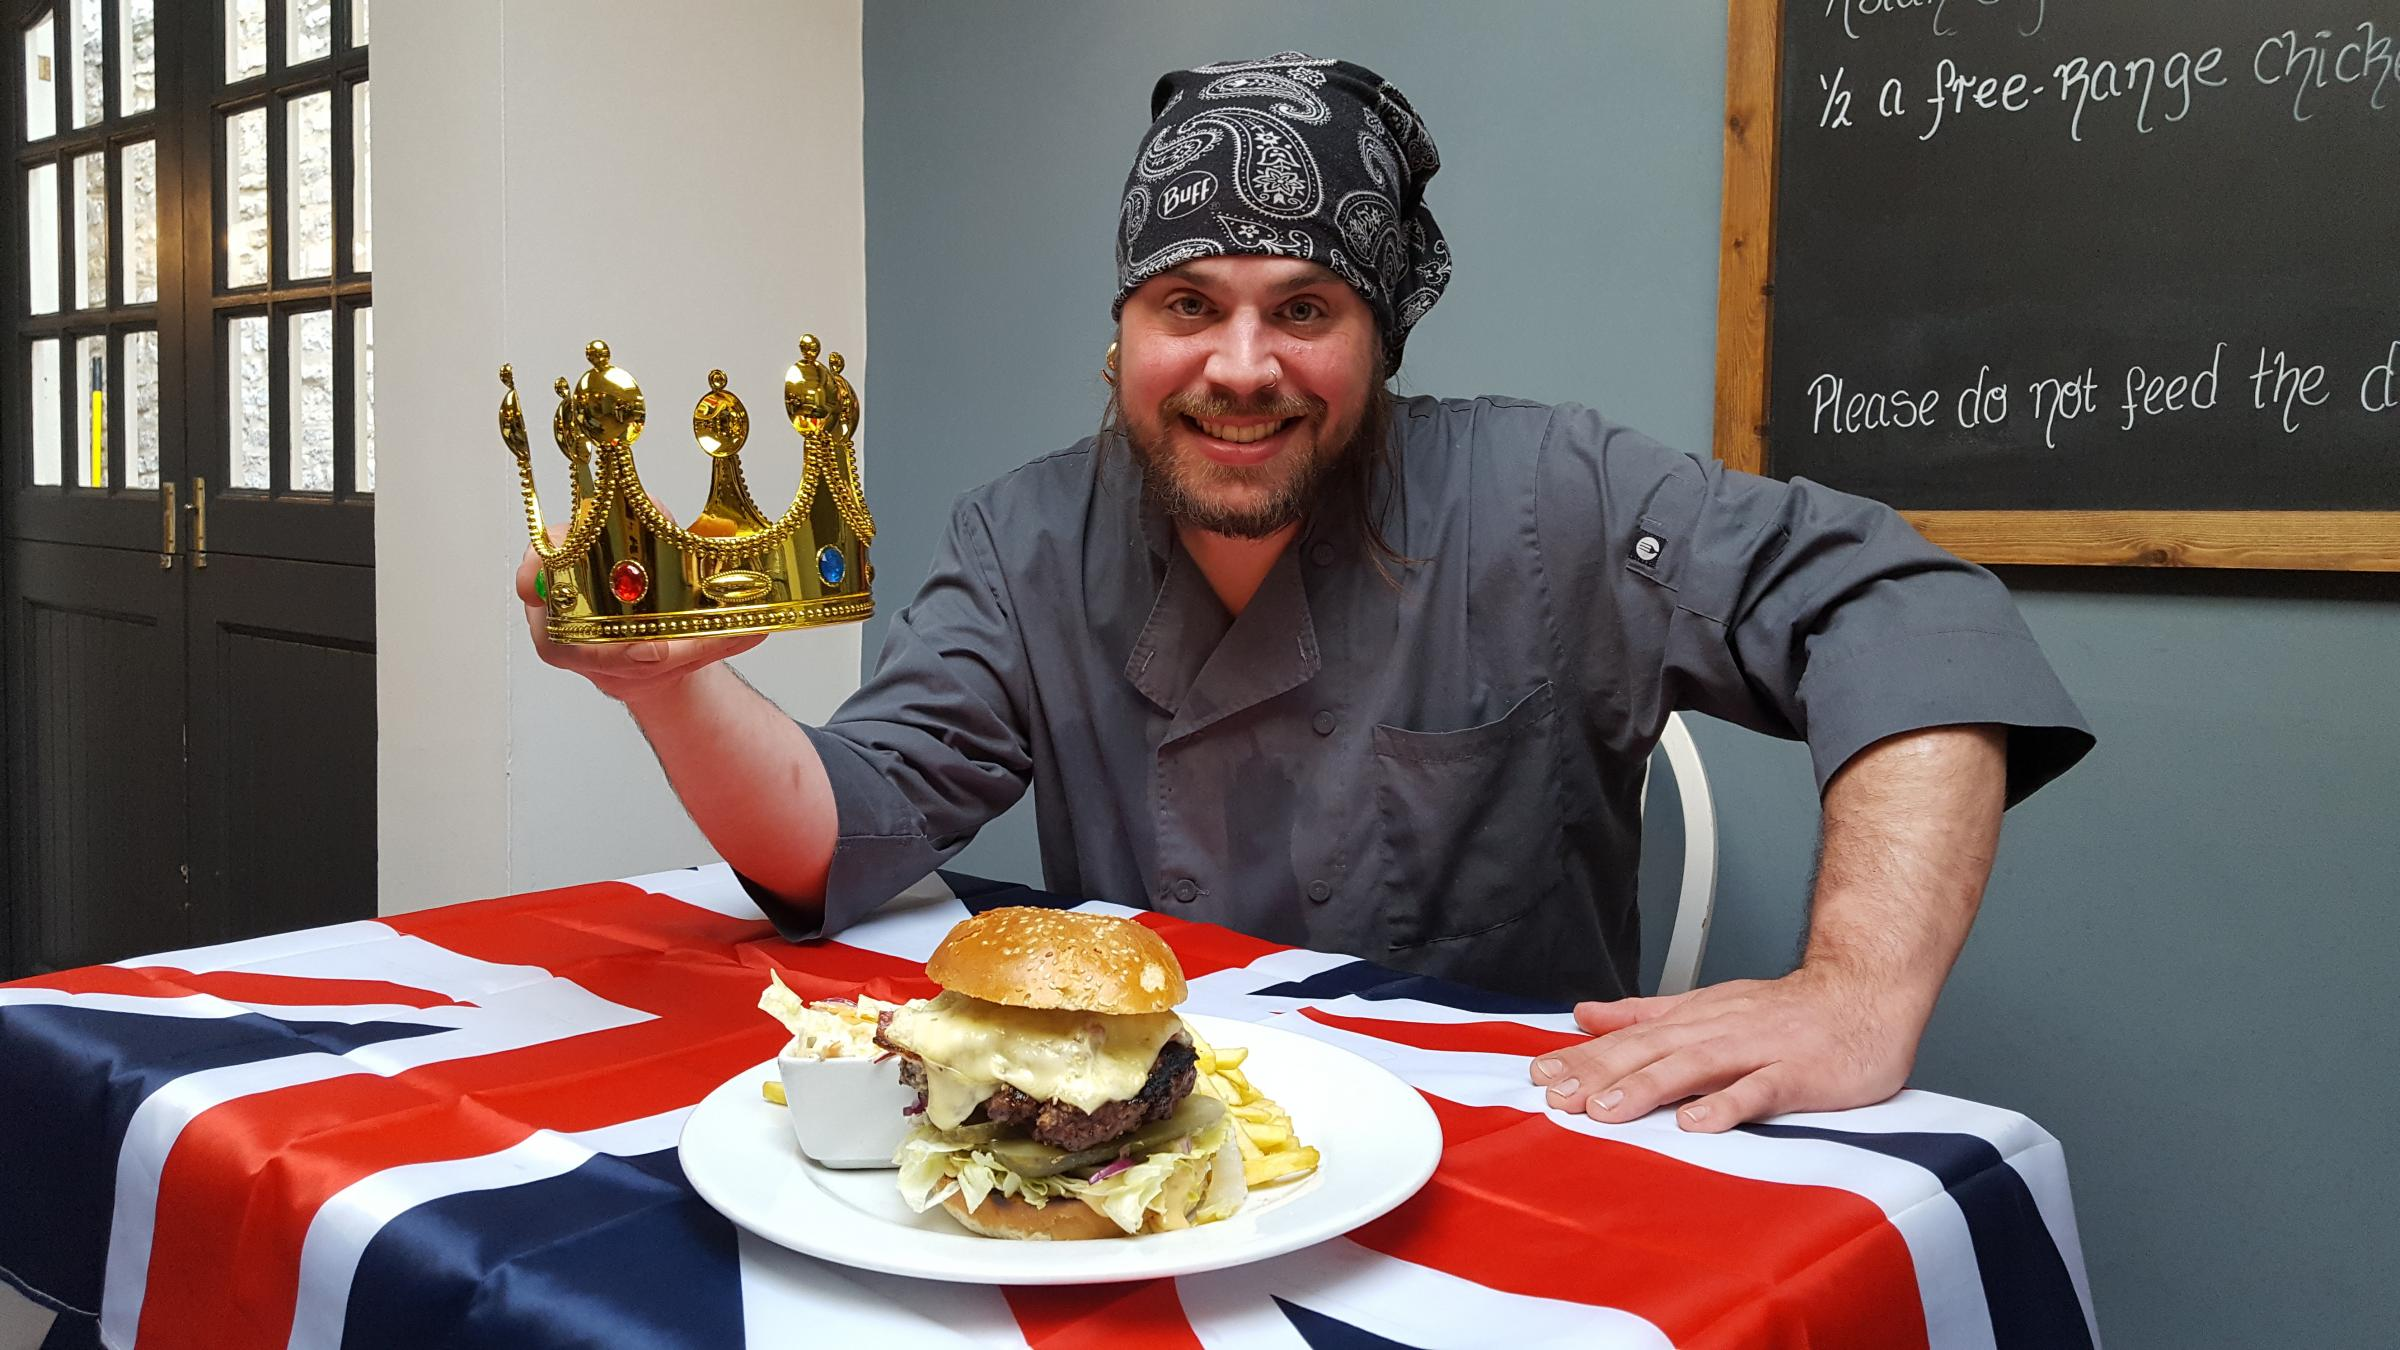 Chef Toby Refoy and the Burger Royale